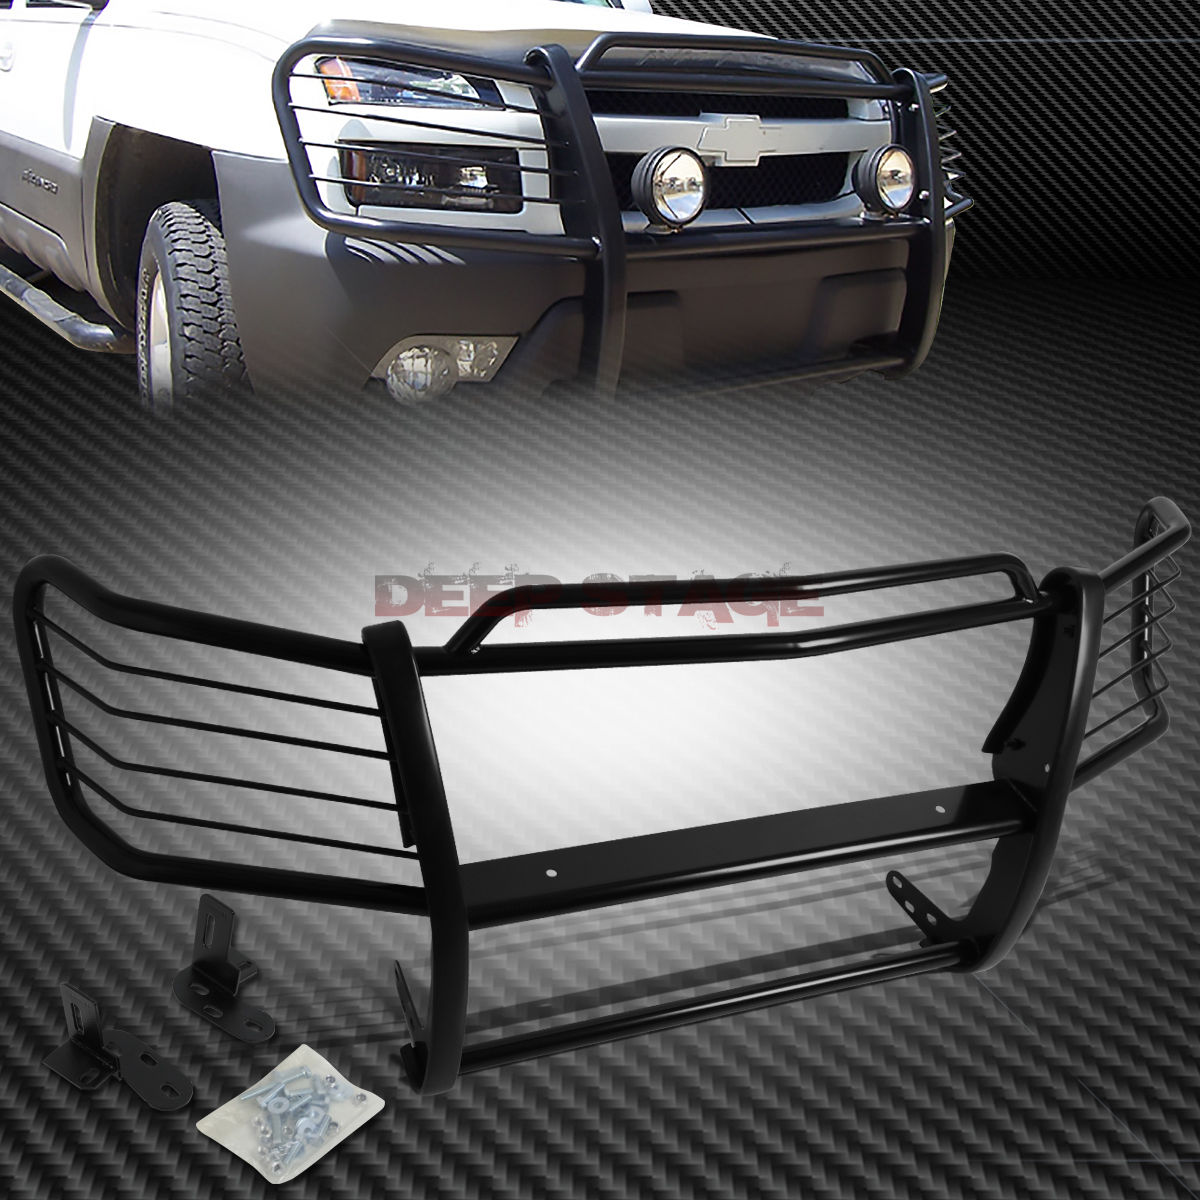 グリル カーボンストレートフロントバンパーブラシグリルガード(02-06)AVALANCHE W / CLADDING CARBON STEEL FRONT BUMPER BRUSH GRILLE GUARD FOR 02-06 AVALANCHE W/ CLADDING